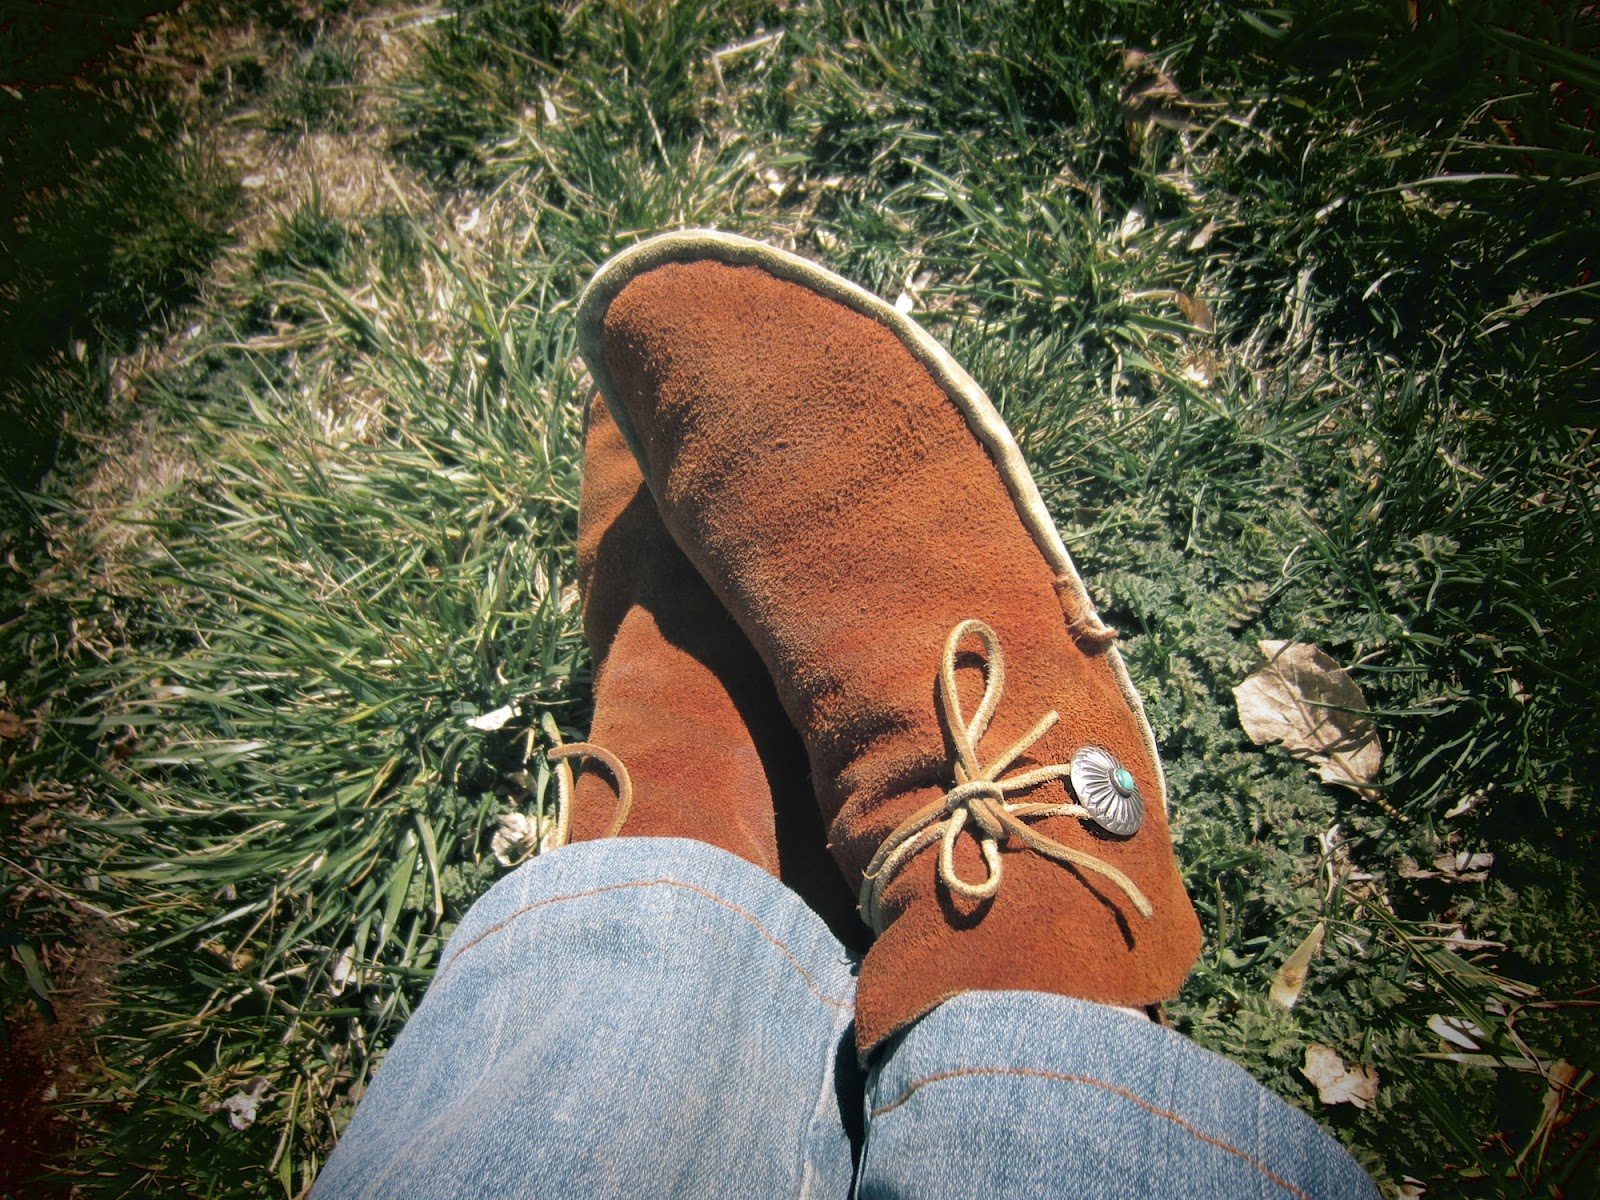 How to make navajo moccasins